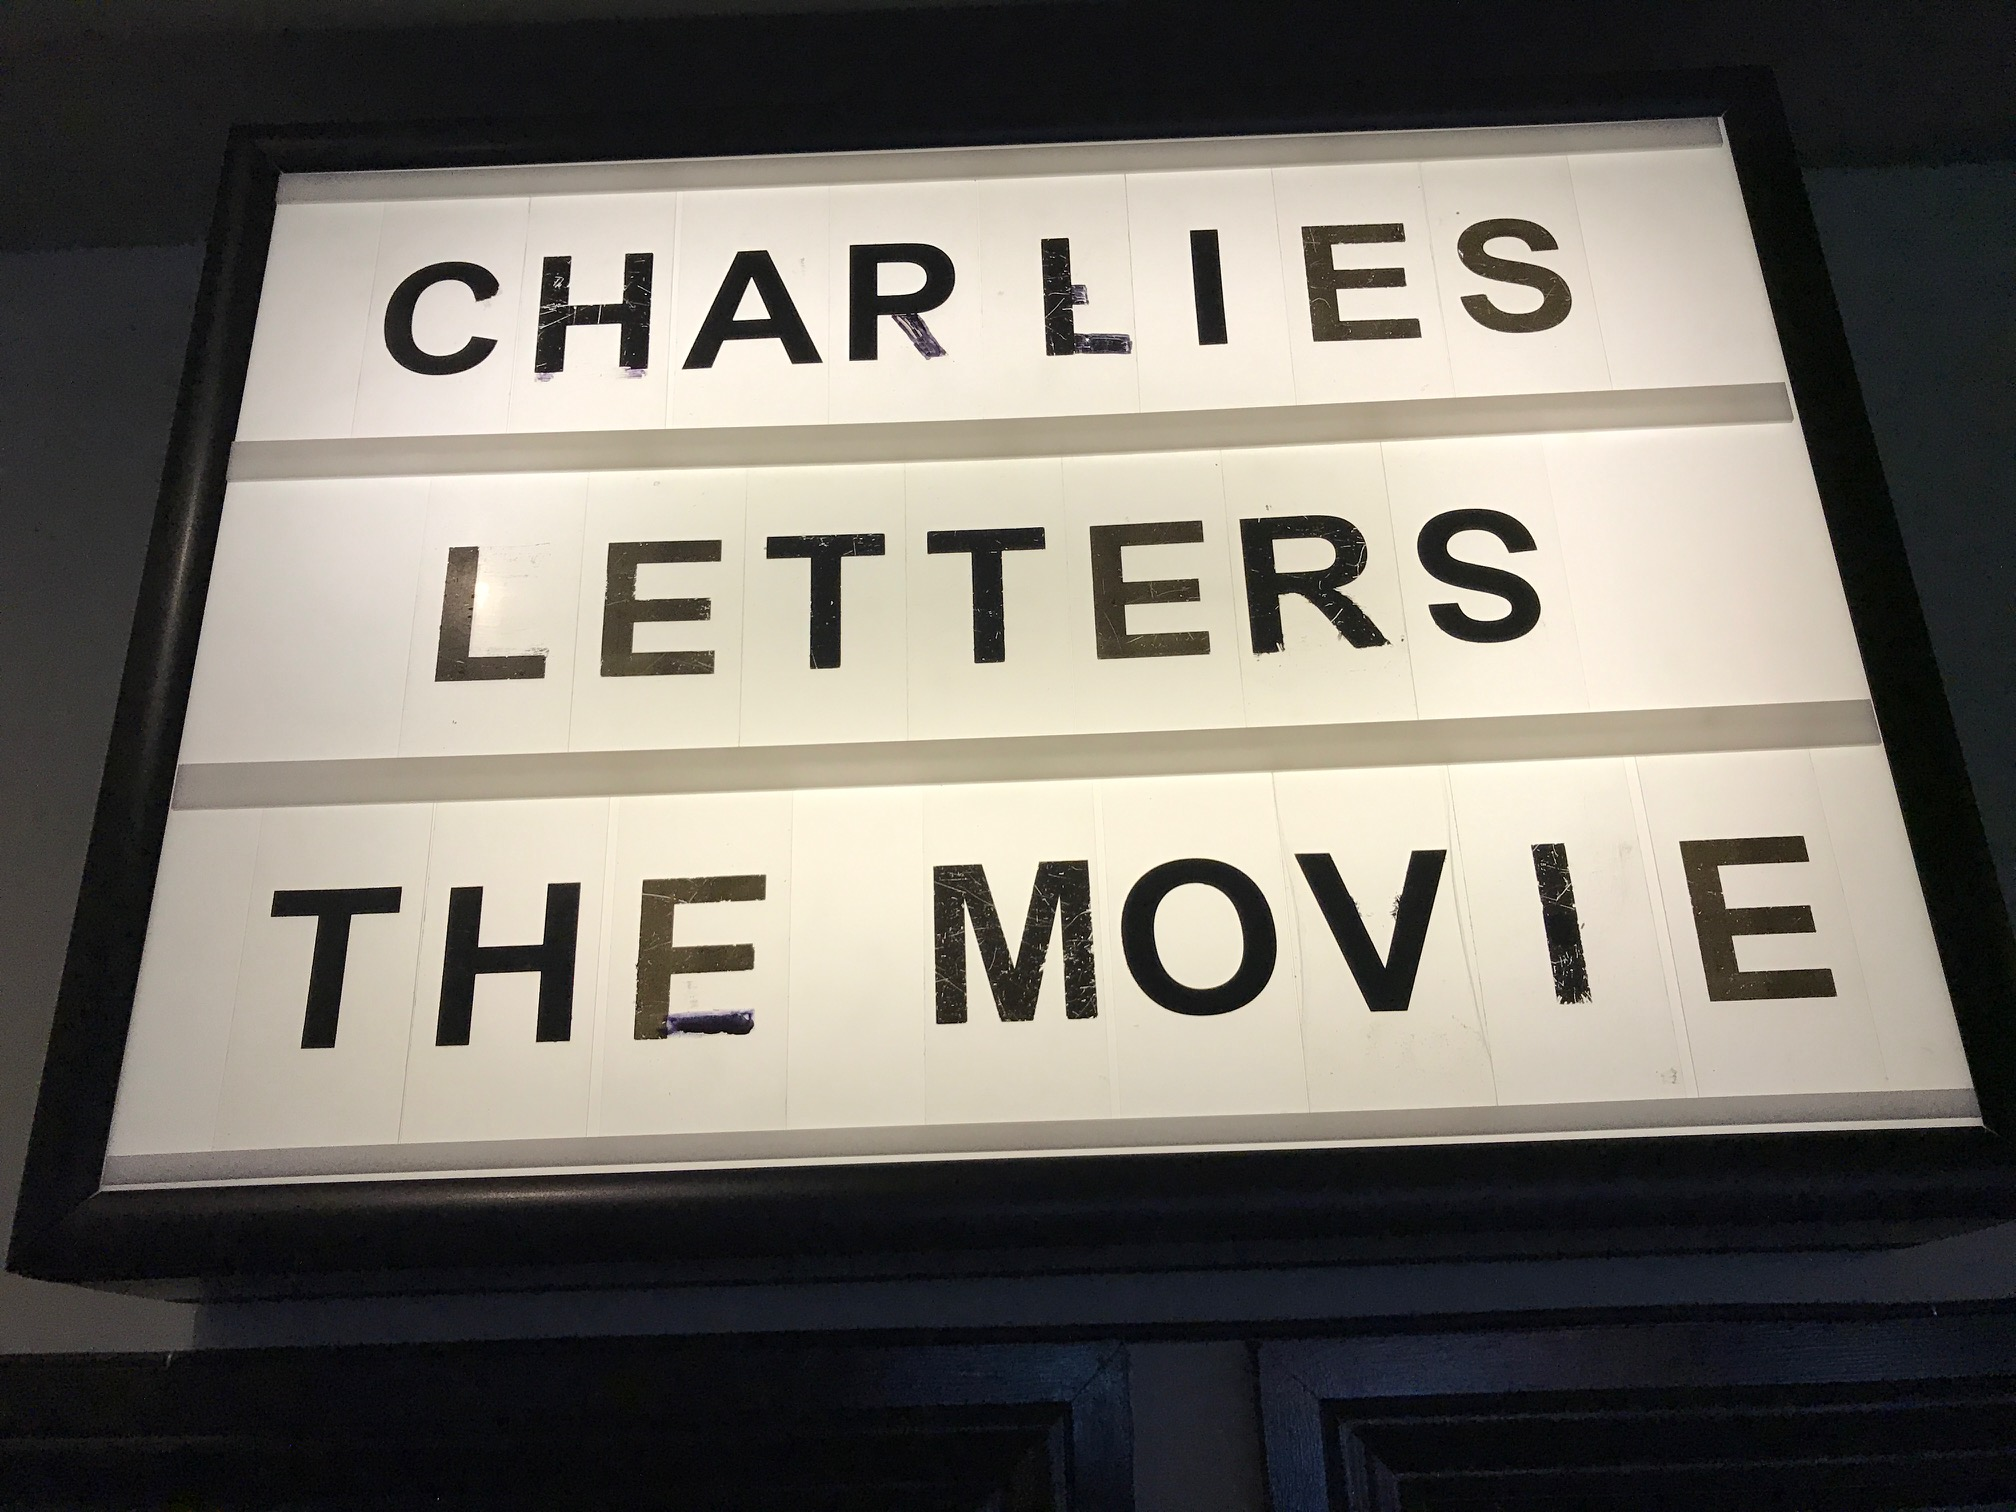 Big announcement later this week about Charlie's Letters!